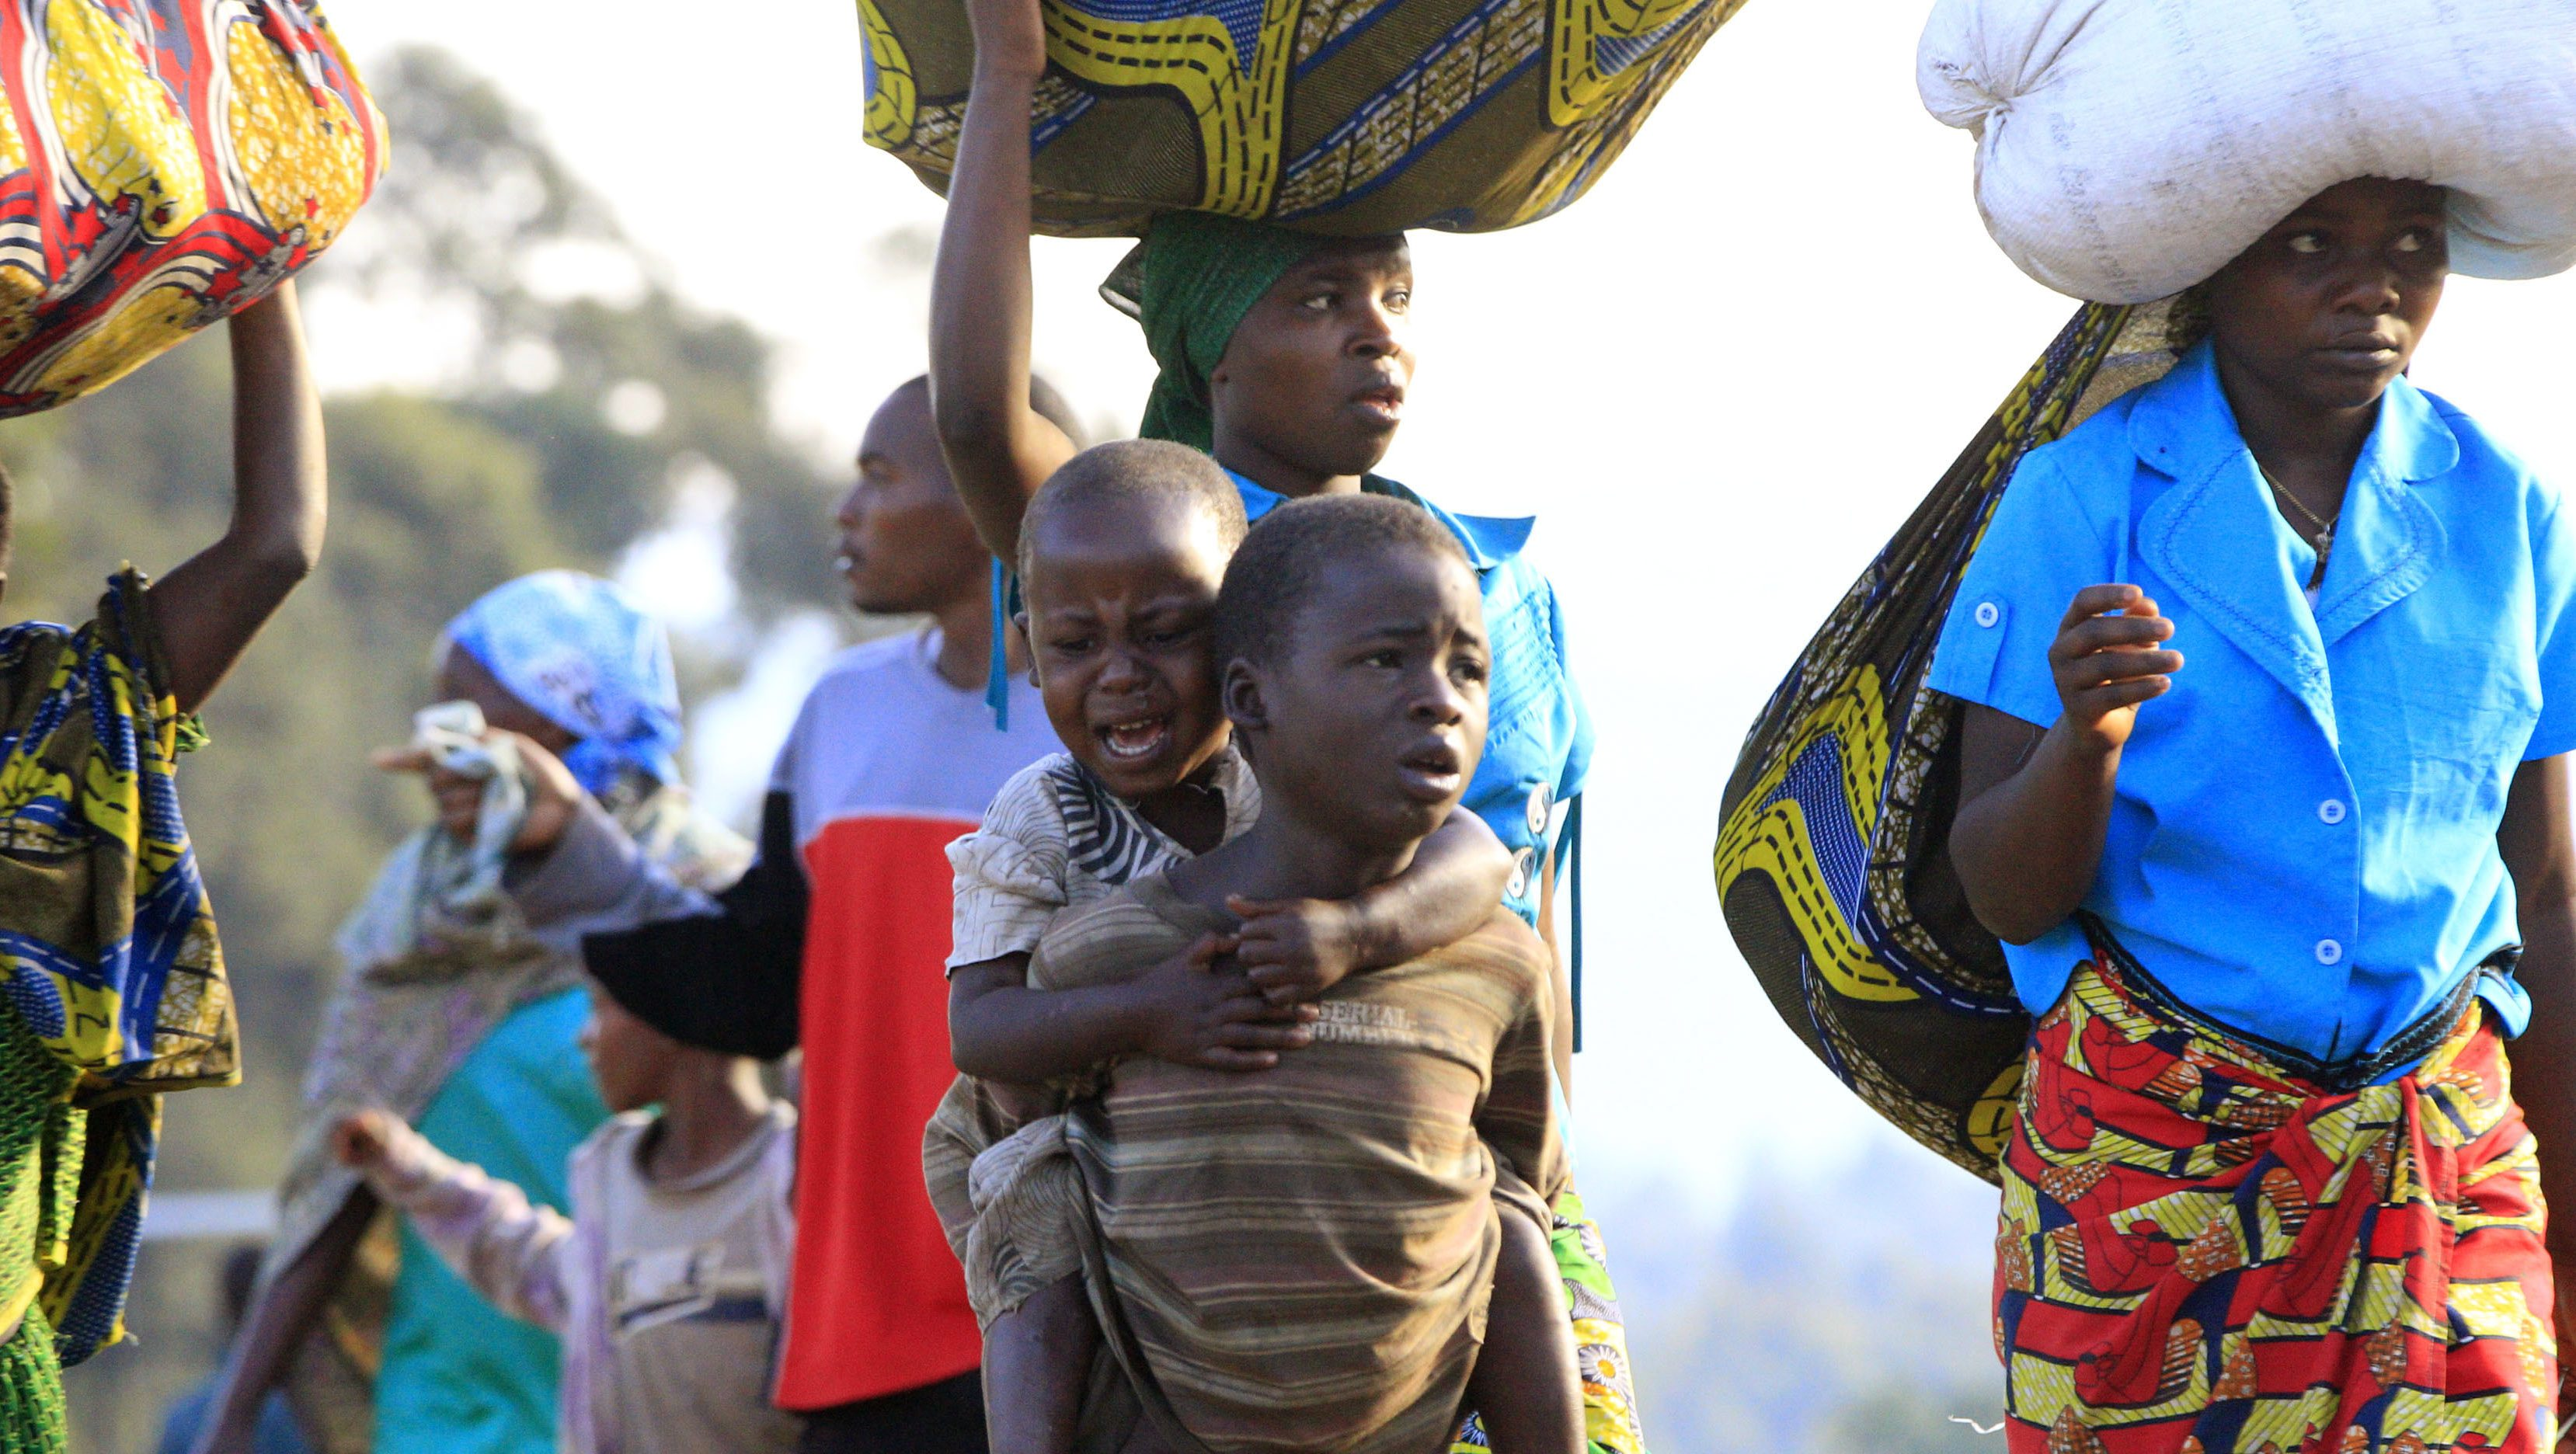 A boy, displaced by fighting between the Congolese army and M23 rebels in Bunagana in the eastern Democratic Republic of Congo, carries a crying child on his back as they make their way home after spending a night in the Ugandan town of Bunagana, 491 km (305 miles) west of capital Kampala October 31, 2013. Civilians celebrated in the streets on Wednesday as Congolese troops entered the eastern border town of Bunagana after a major new success in their offensive to crush a 20-month rebellion. The town was the first seized last year by M23 rebels in the Democratic Republic of Congo and the last they held after being forced back recently by Congo's U.N.-backed army. Bunagana was strategic during the rebellion, allowing the M23 to control lucrative cross-border taxation and giving them access to Uganda and Rwanda, which are accused by U.N. experts of backing the rebels, something both nations deny.